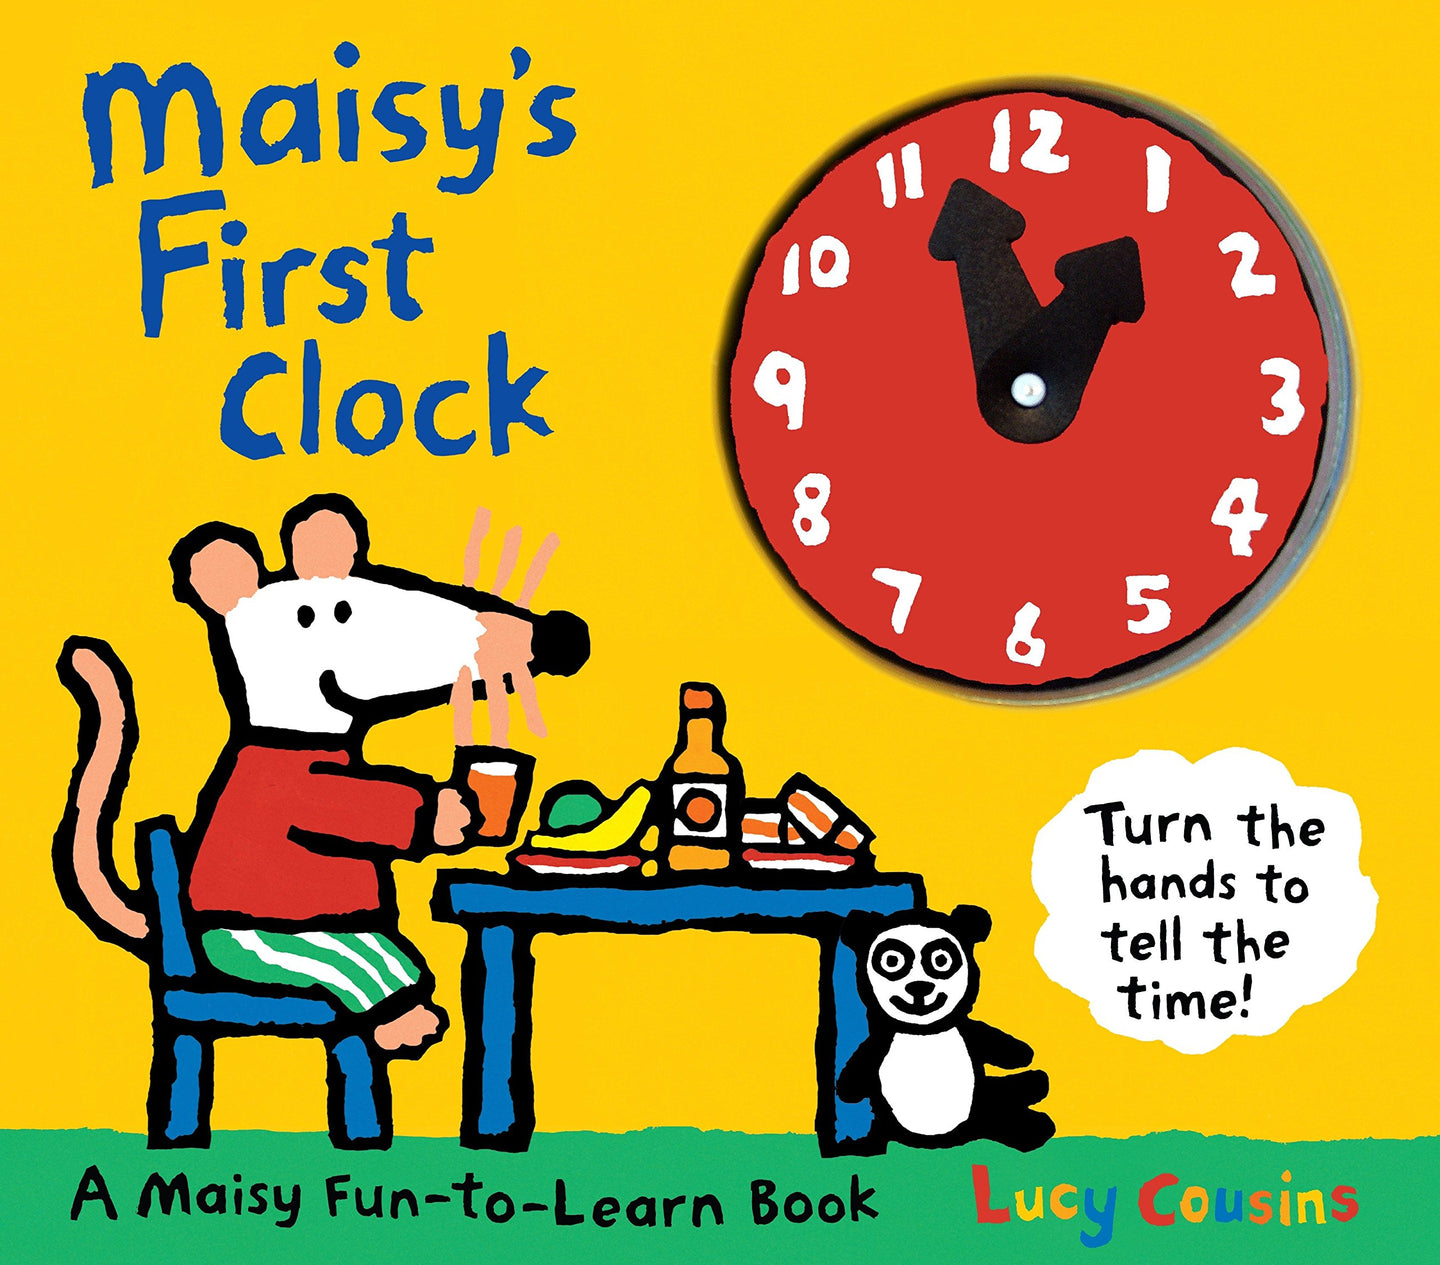 Maisy's First Clock